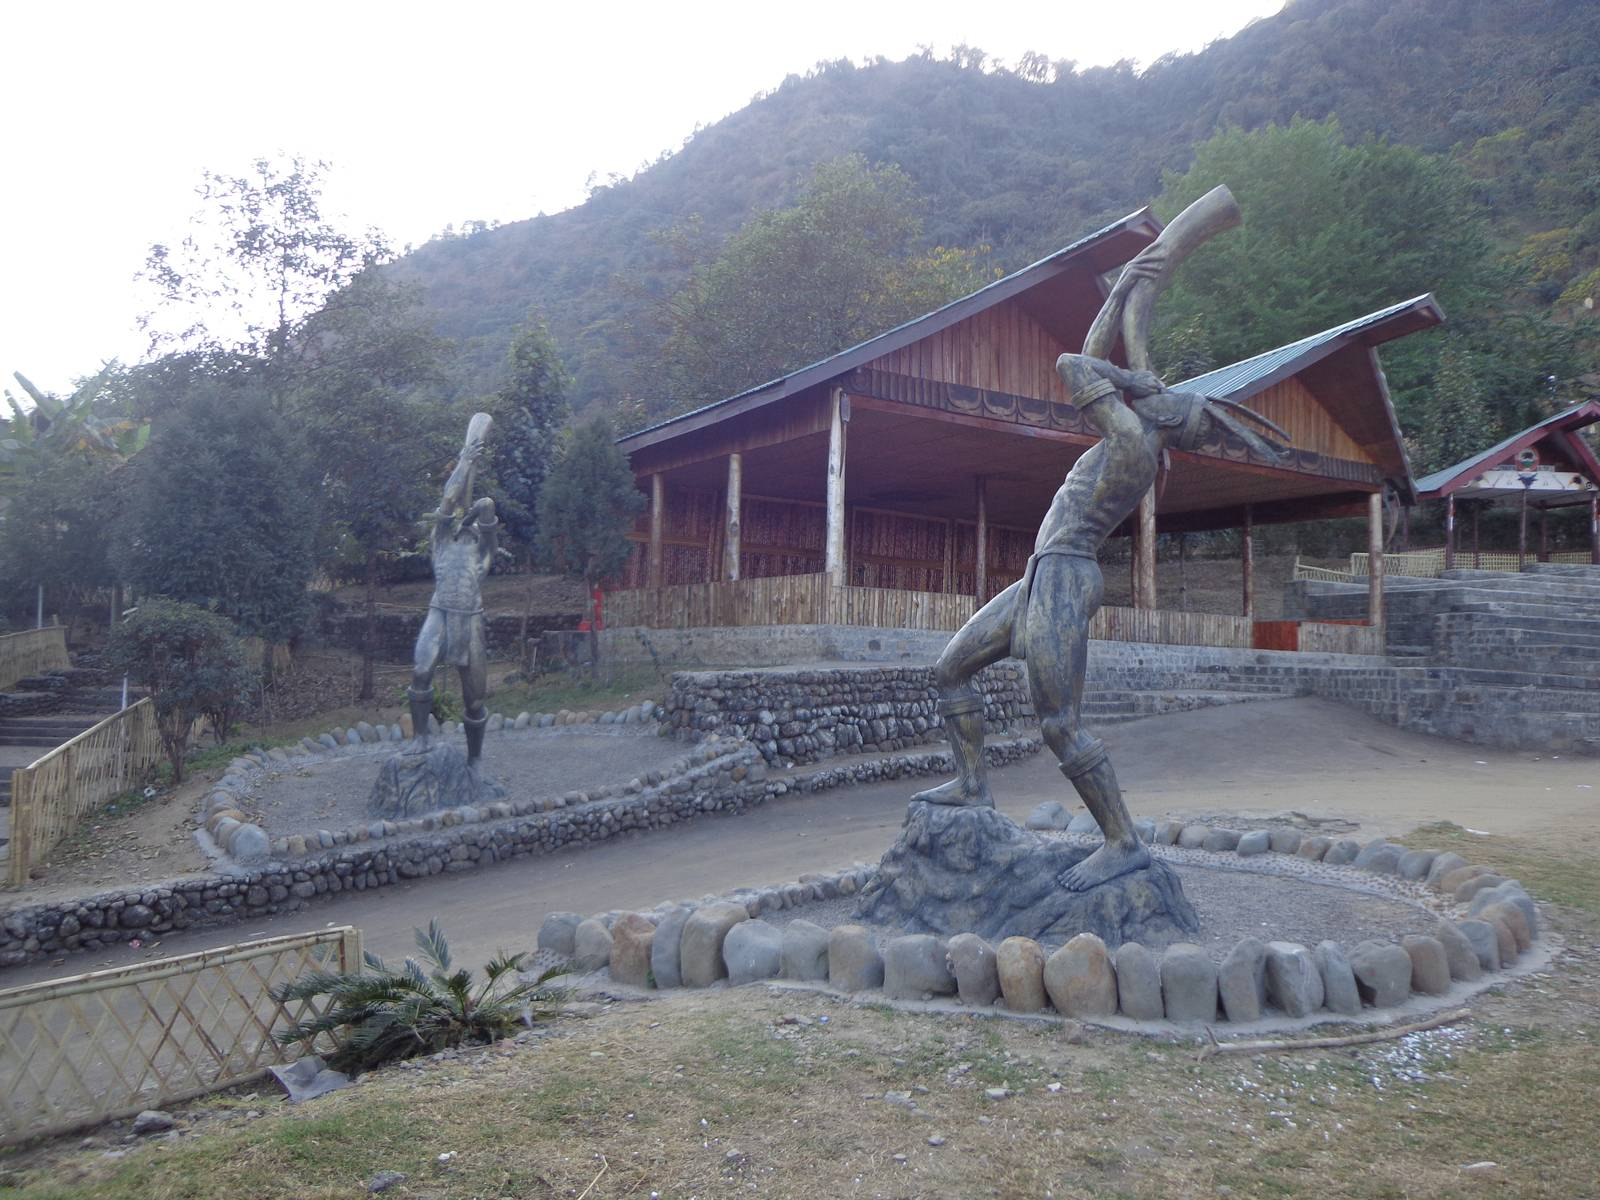 The entrance to the open air theater that hosts most of the tribal performances.